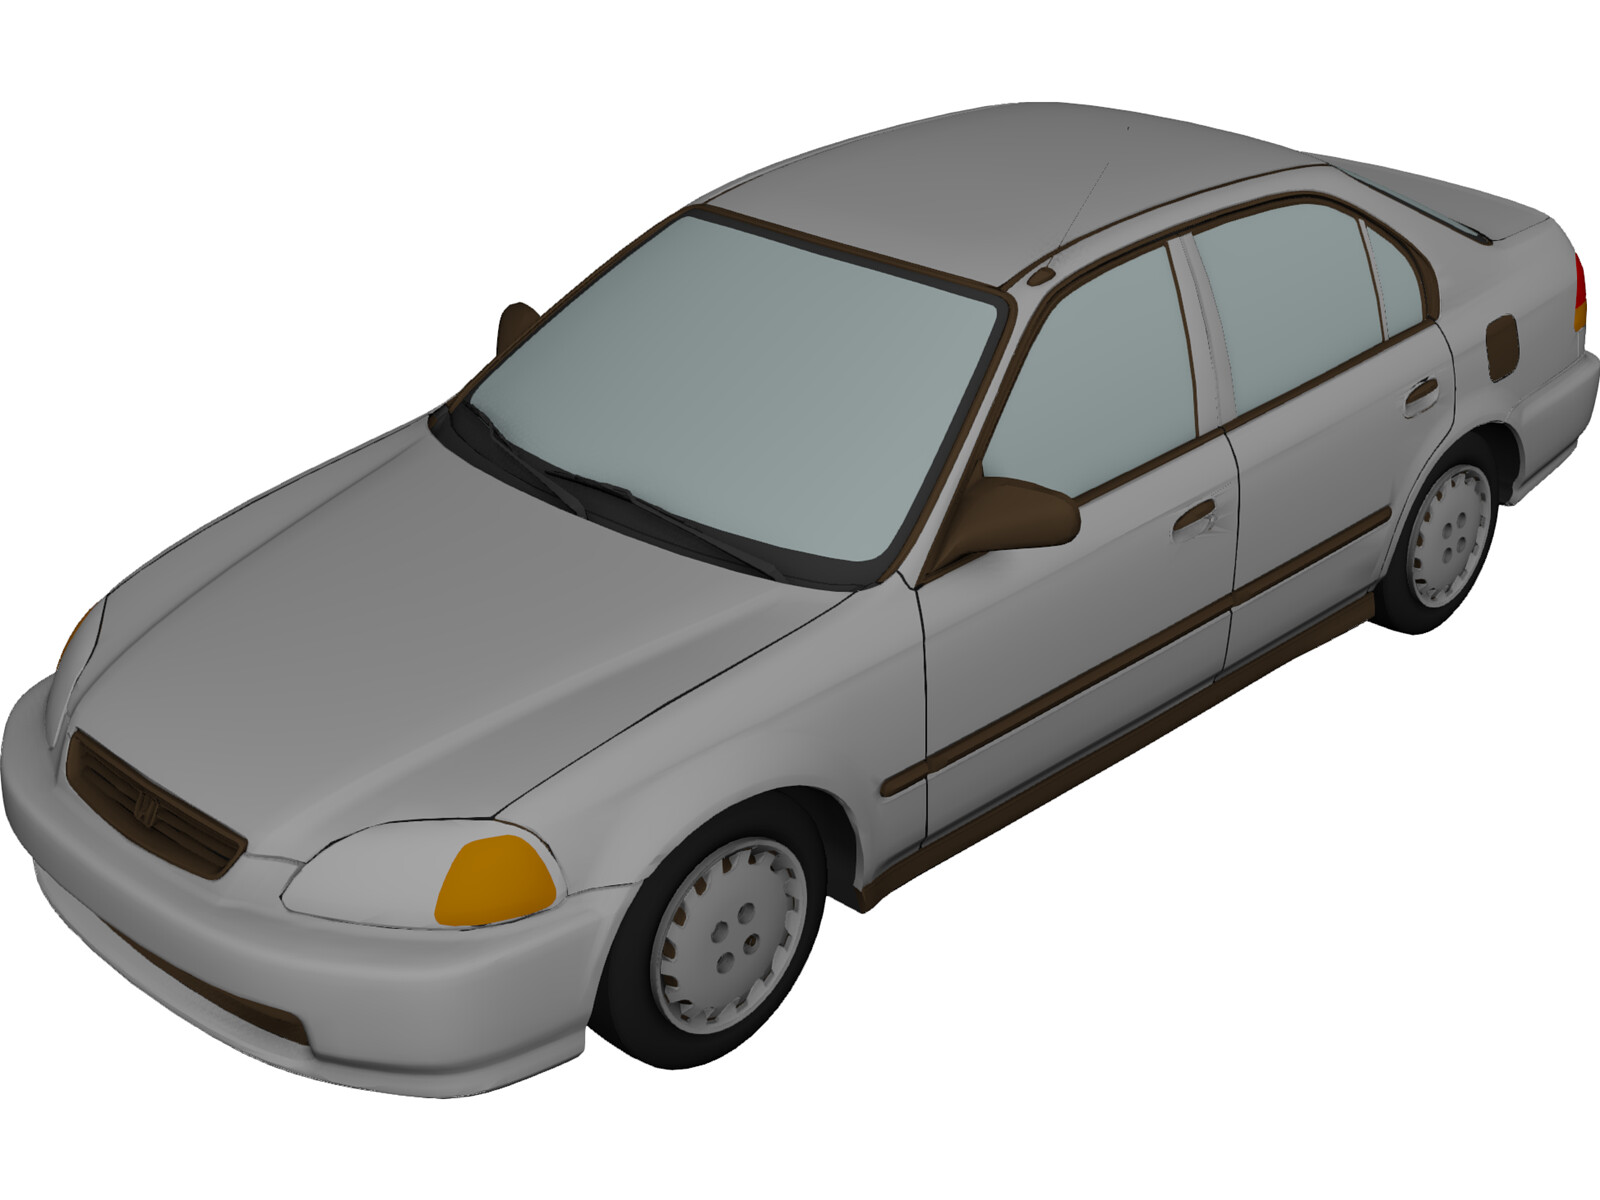 Honda Civic Sedan (1997) 3D Model